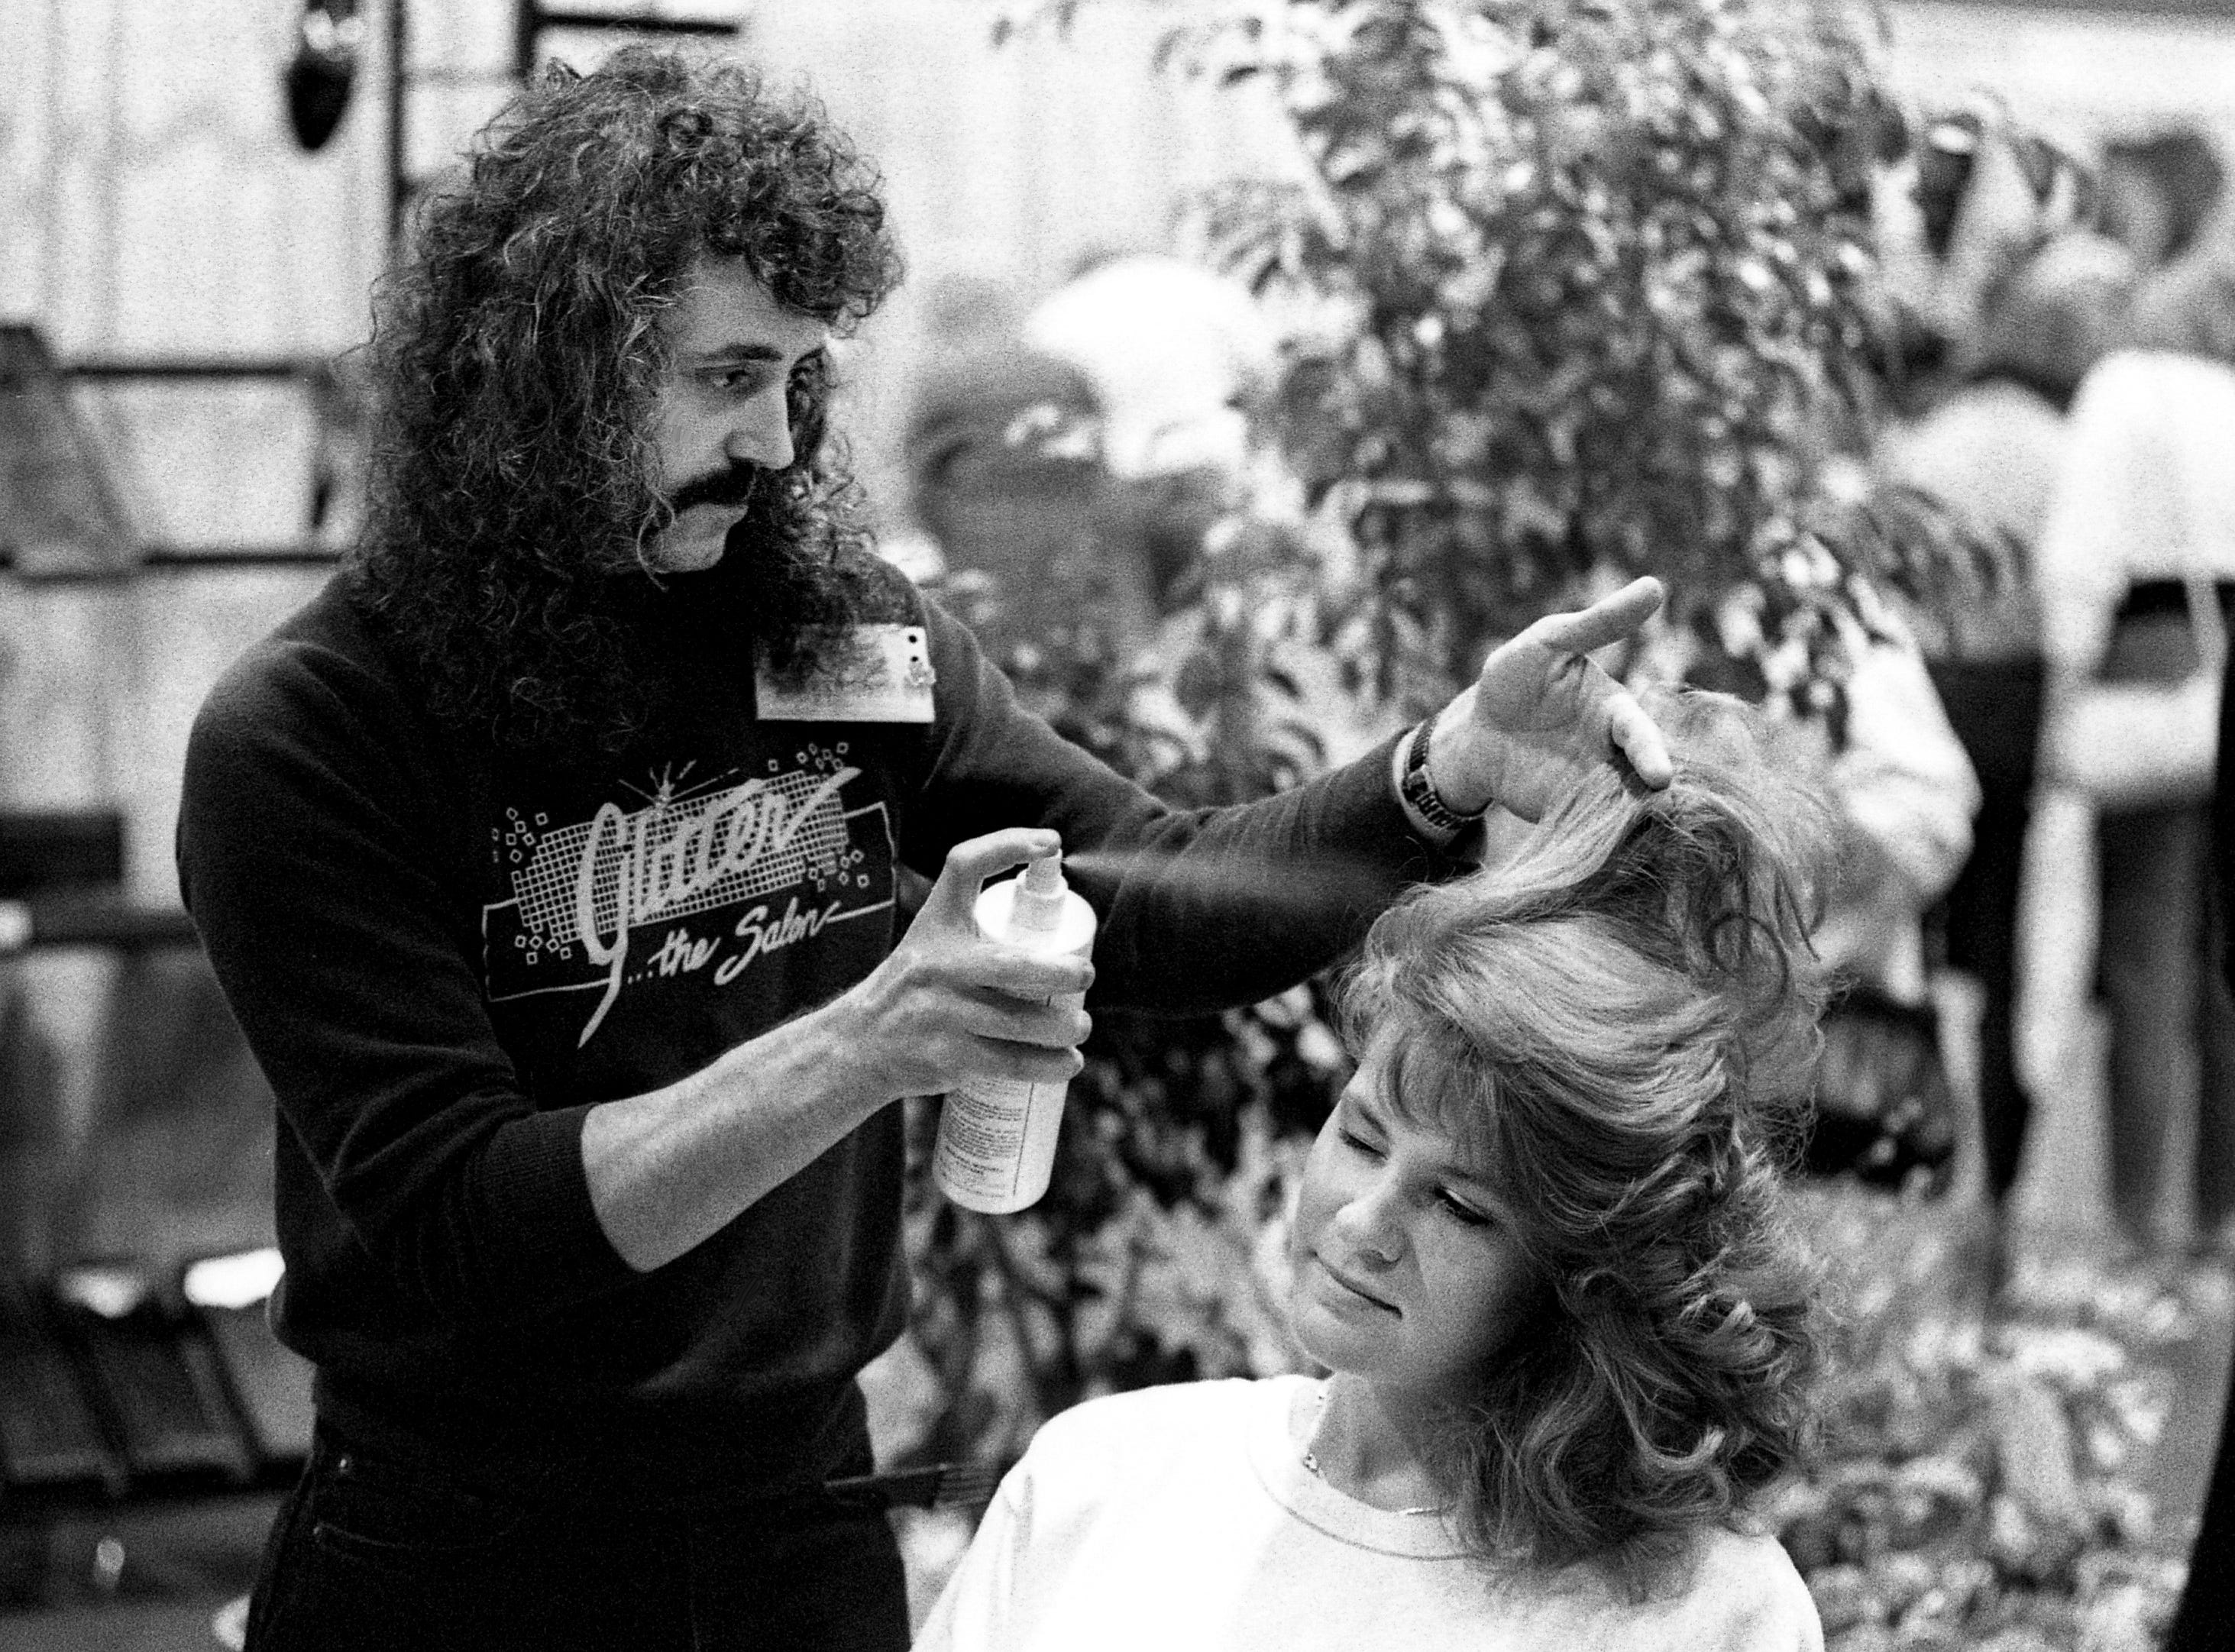 Mark Meeks of Glitter Salon styles Sonya Mansfield's hair during the third annual Southern Women's Show at the Nashville Convention Center on March 17, 1989.